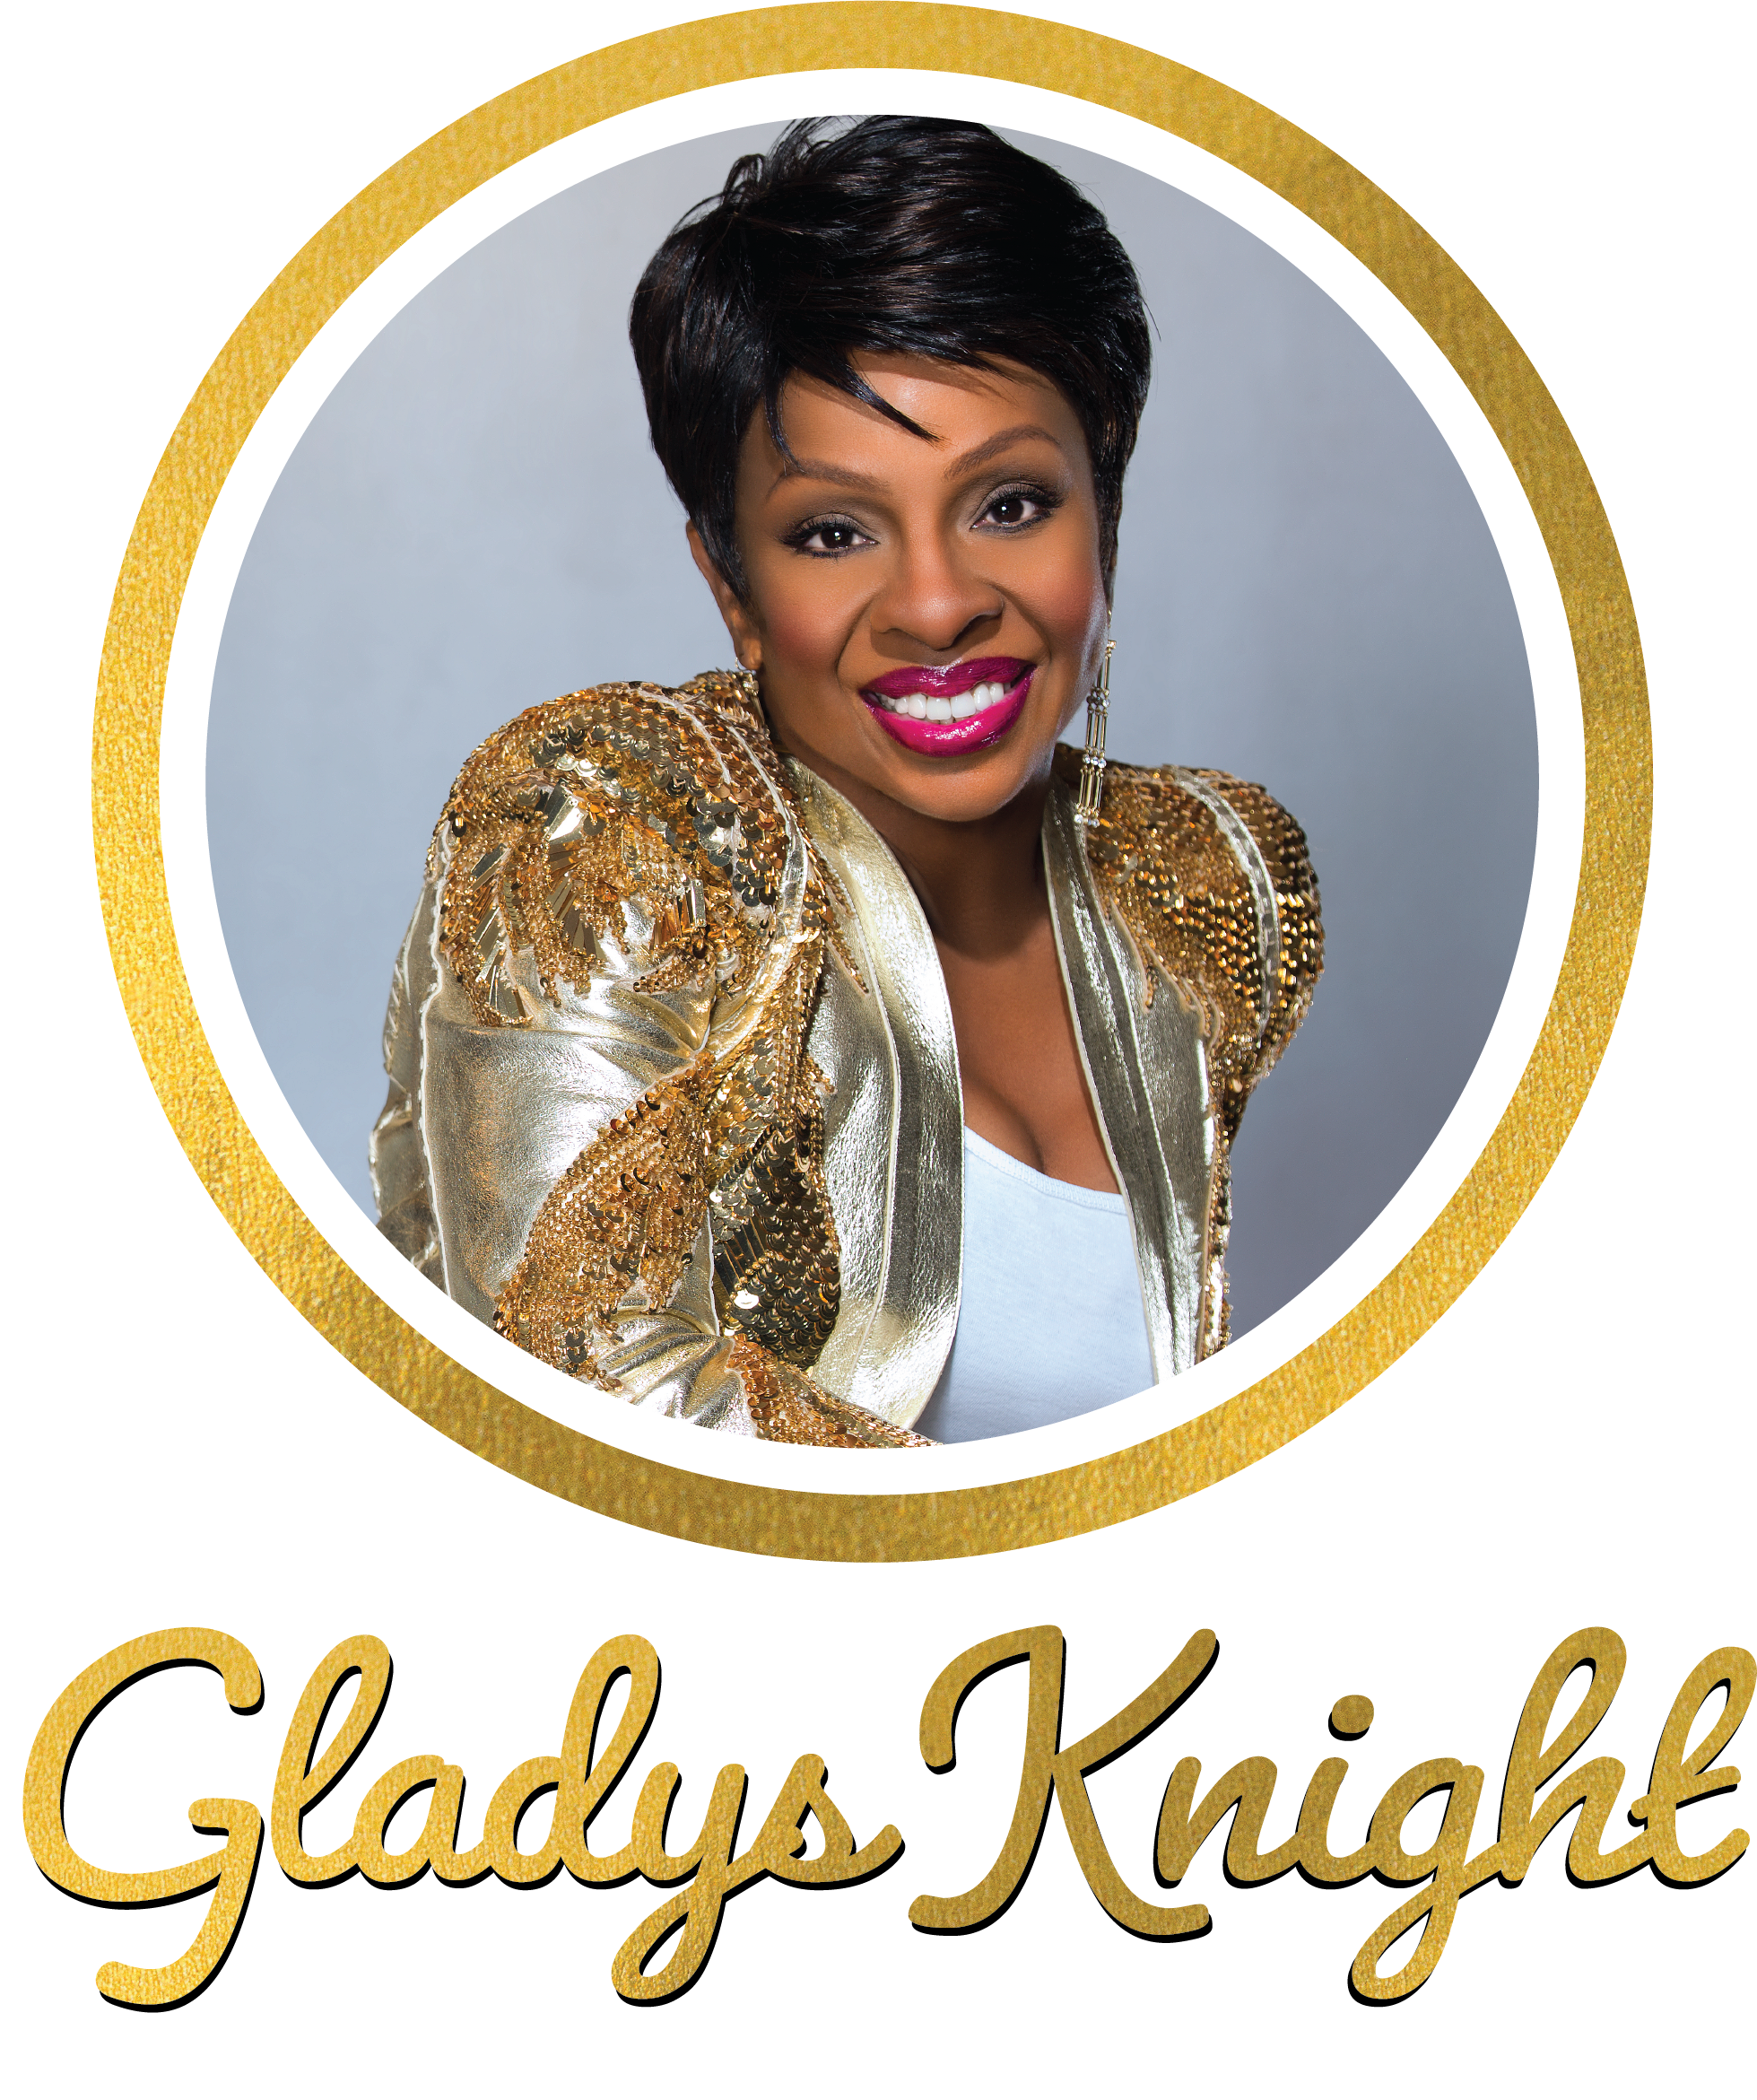 2021-1-8-Gladys-Knight-photo.png